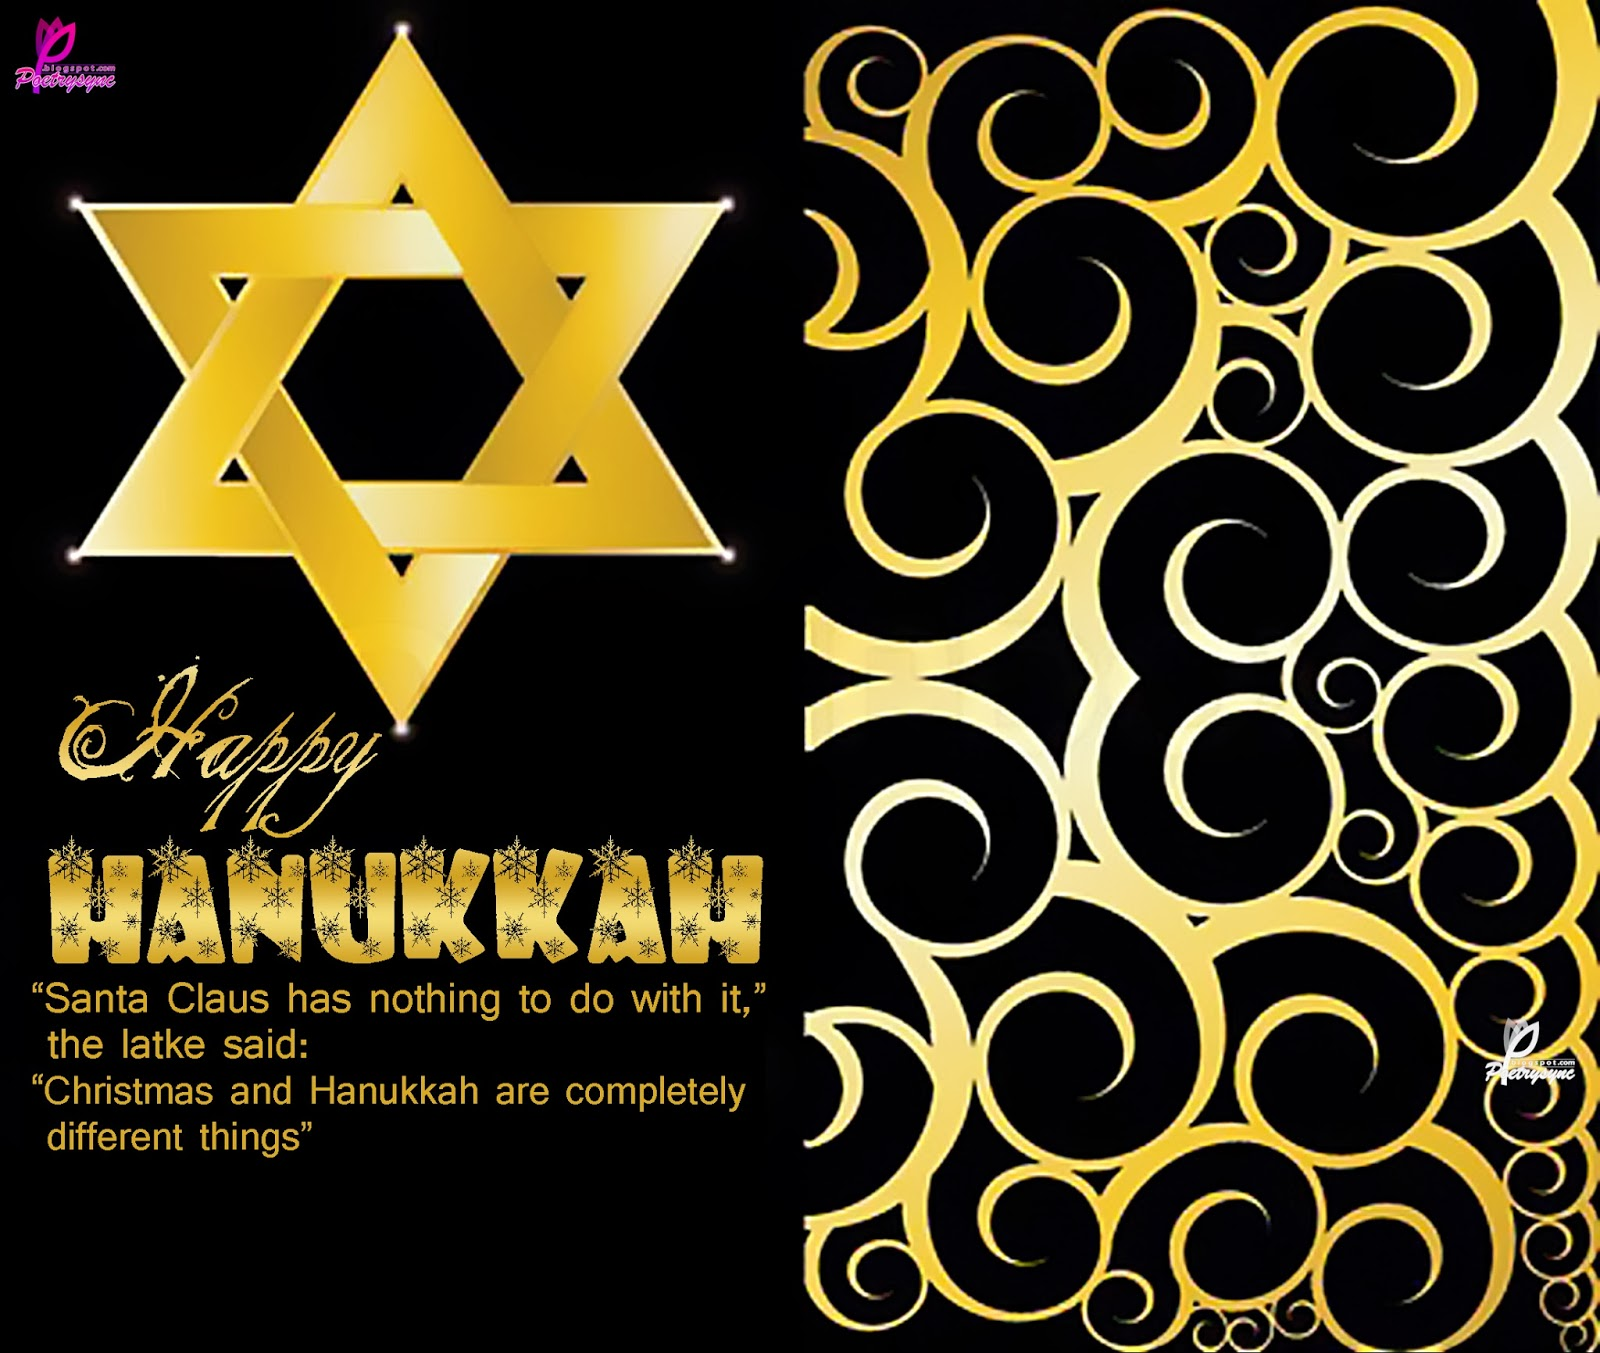 65 beautiful hanukkah greeting pictures happy hanukkah santa claus has nothing to do with it m4hsunfo